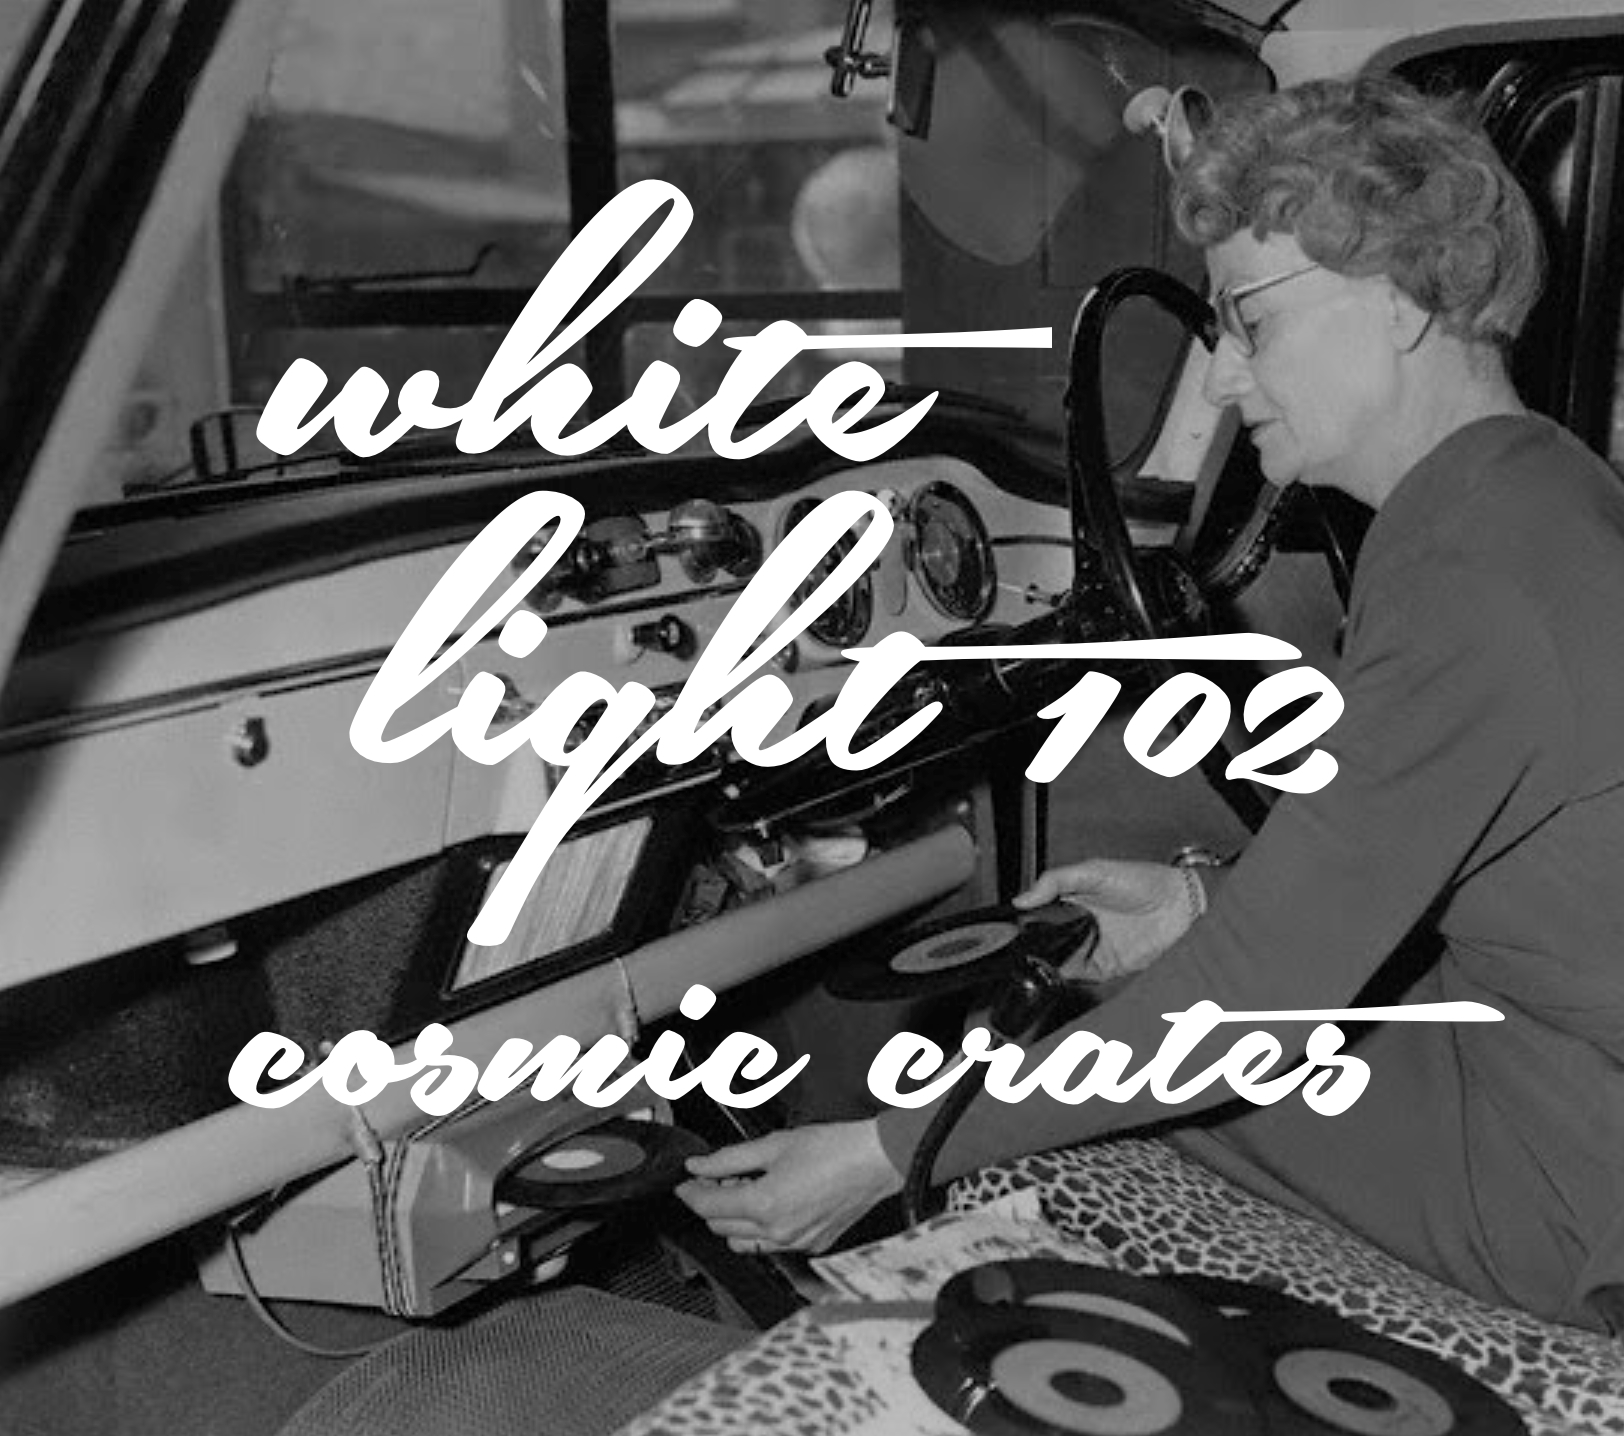 White Light 102 - Cosmic Crates